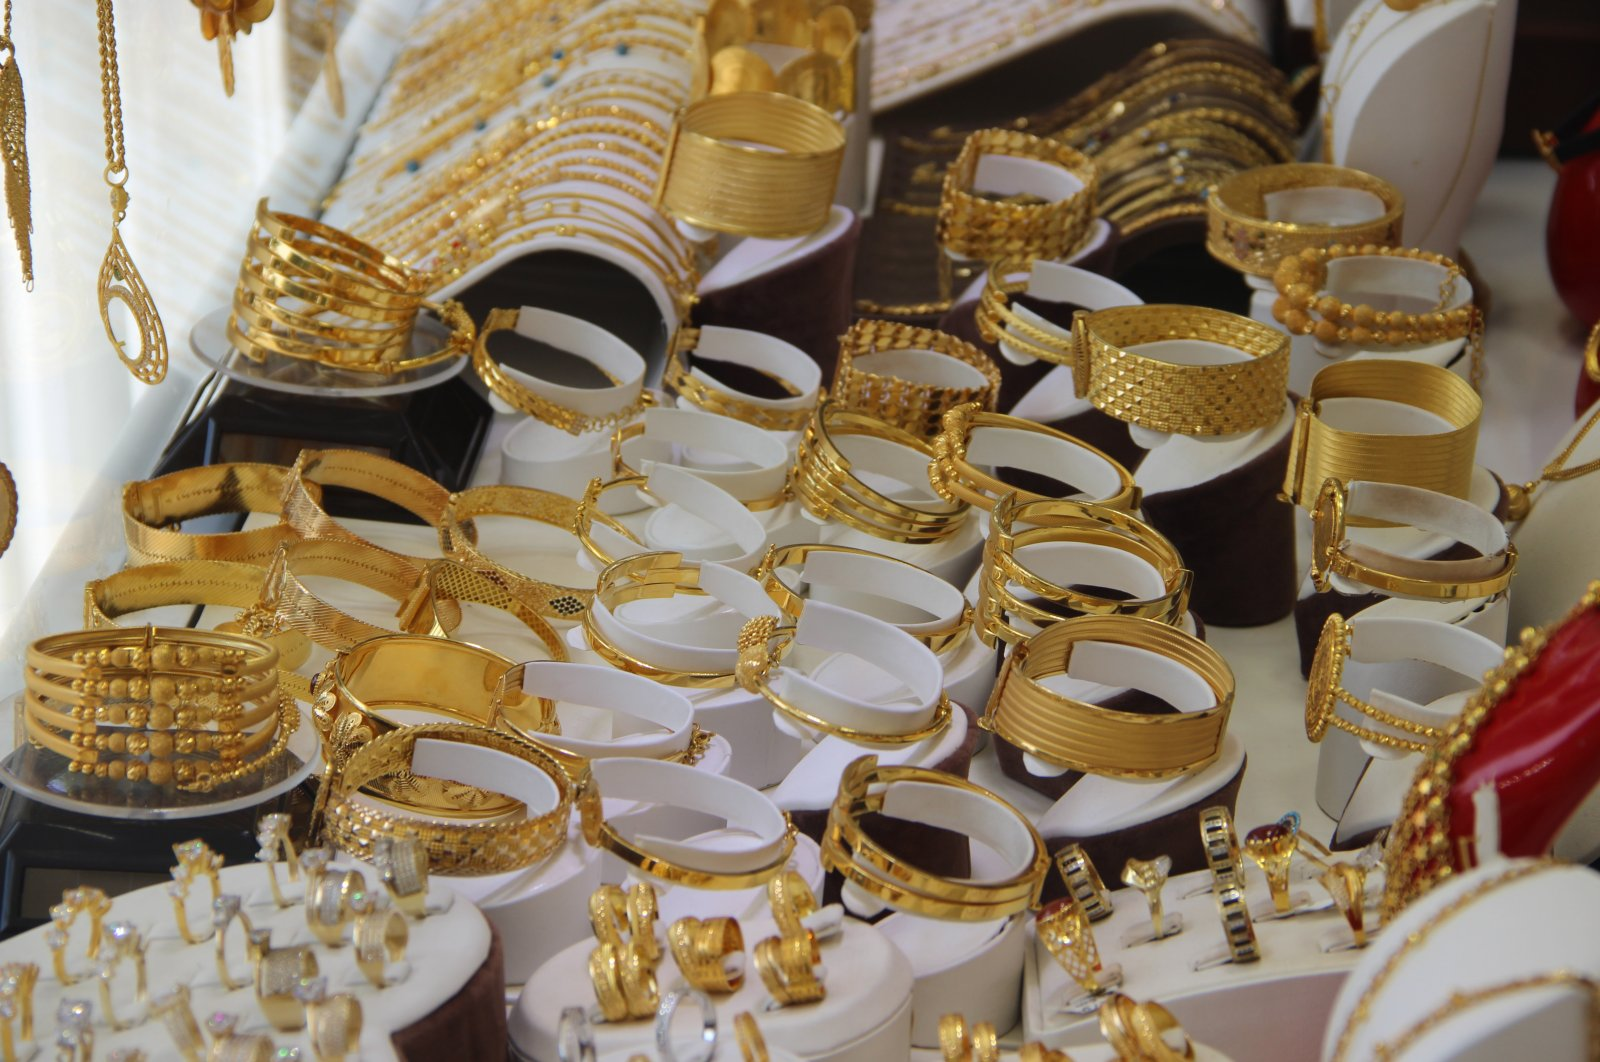 Gold jewelry on display at a shop in Diyarbakır, southeastern Turkey, Oct. 1, 2020. (DHA Photo)